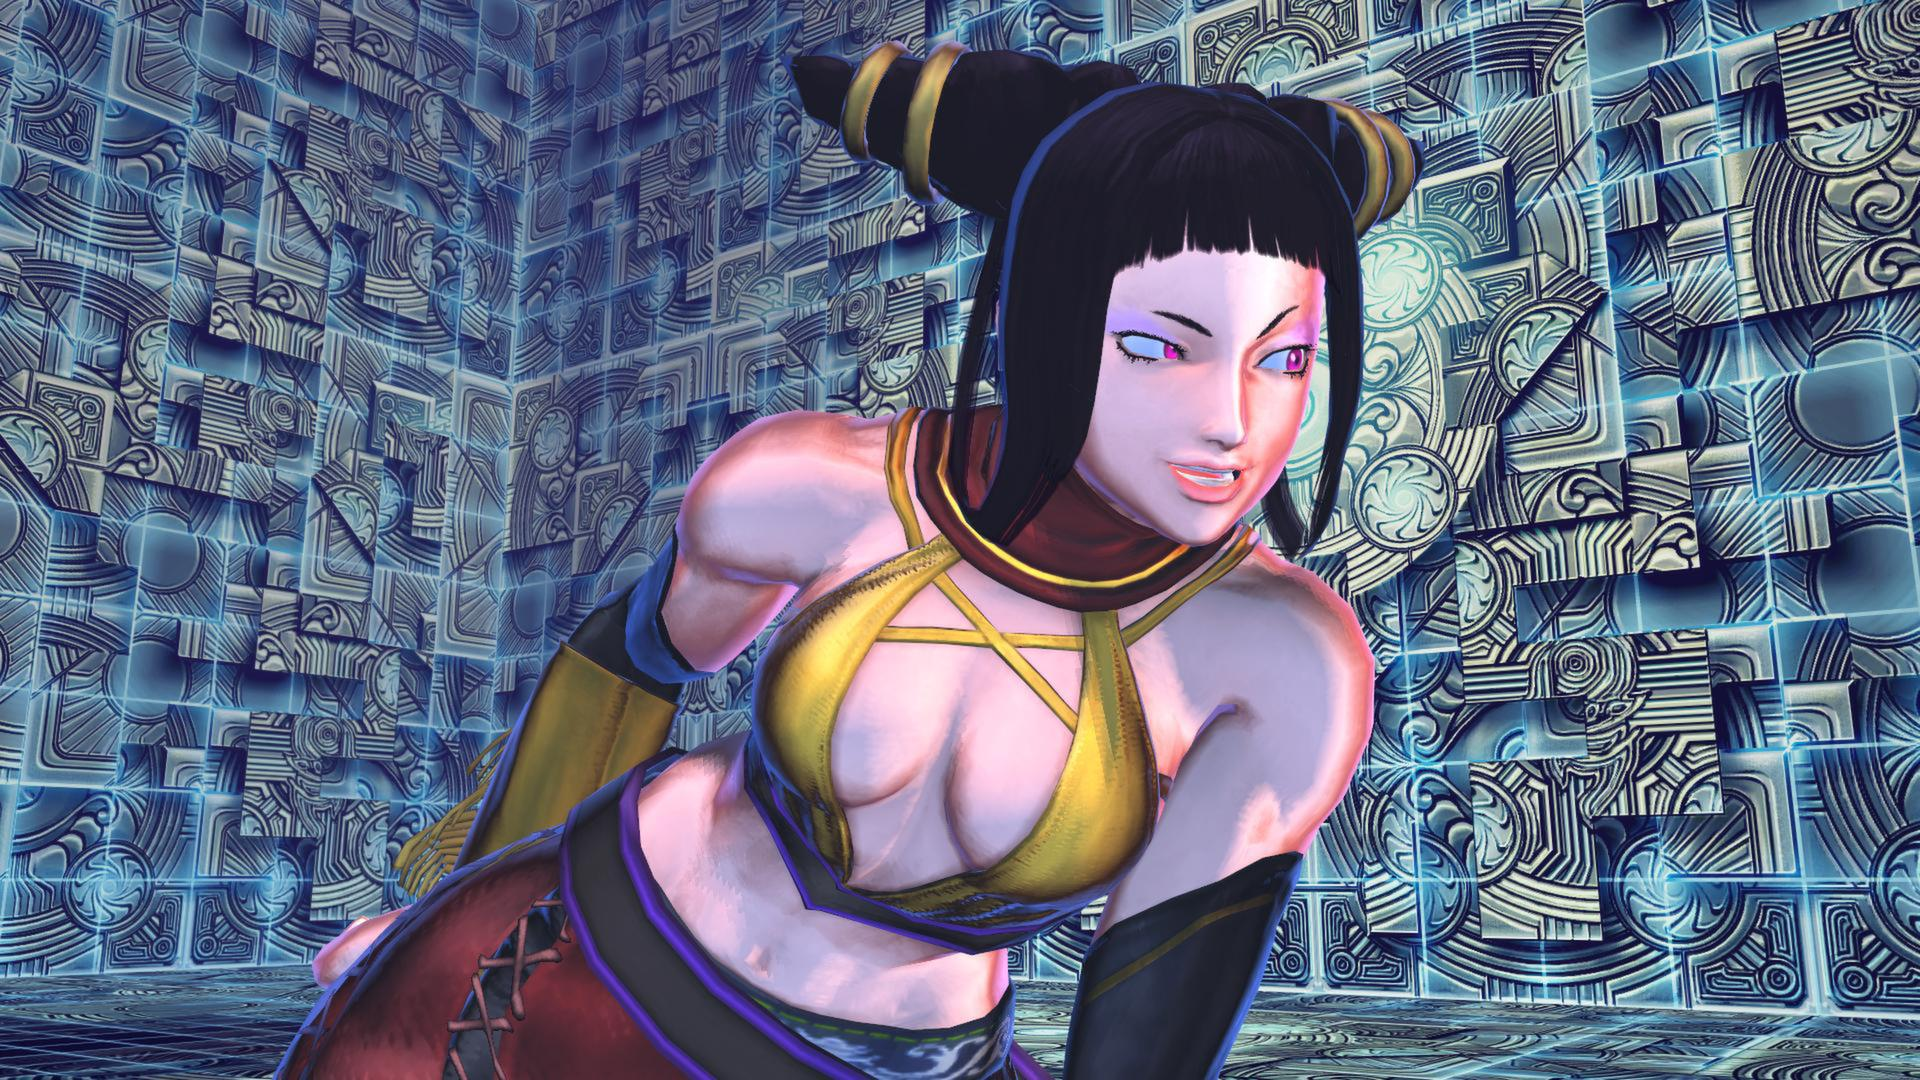 Street Fighter x tekken Juri